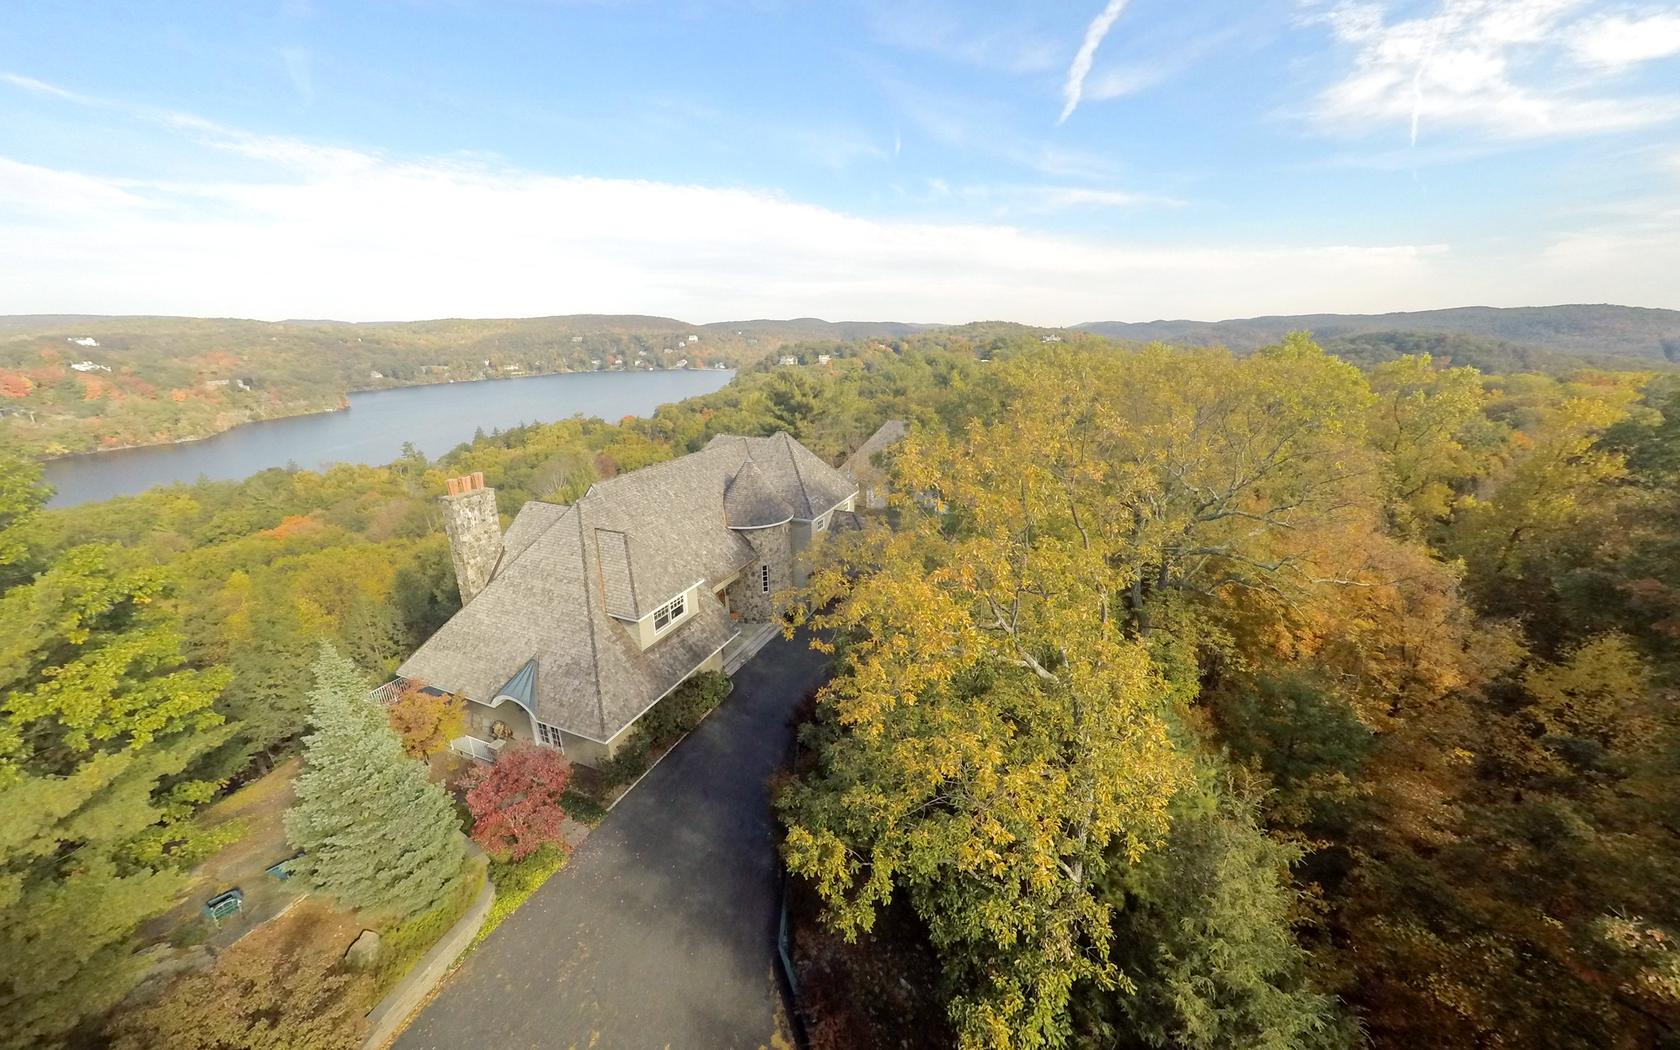 Single Family Home for Sale at Eagle's Nest 24 Ridge Rd Tuxedo Park, New York 10987 United States